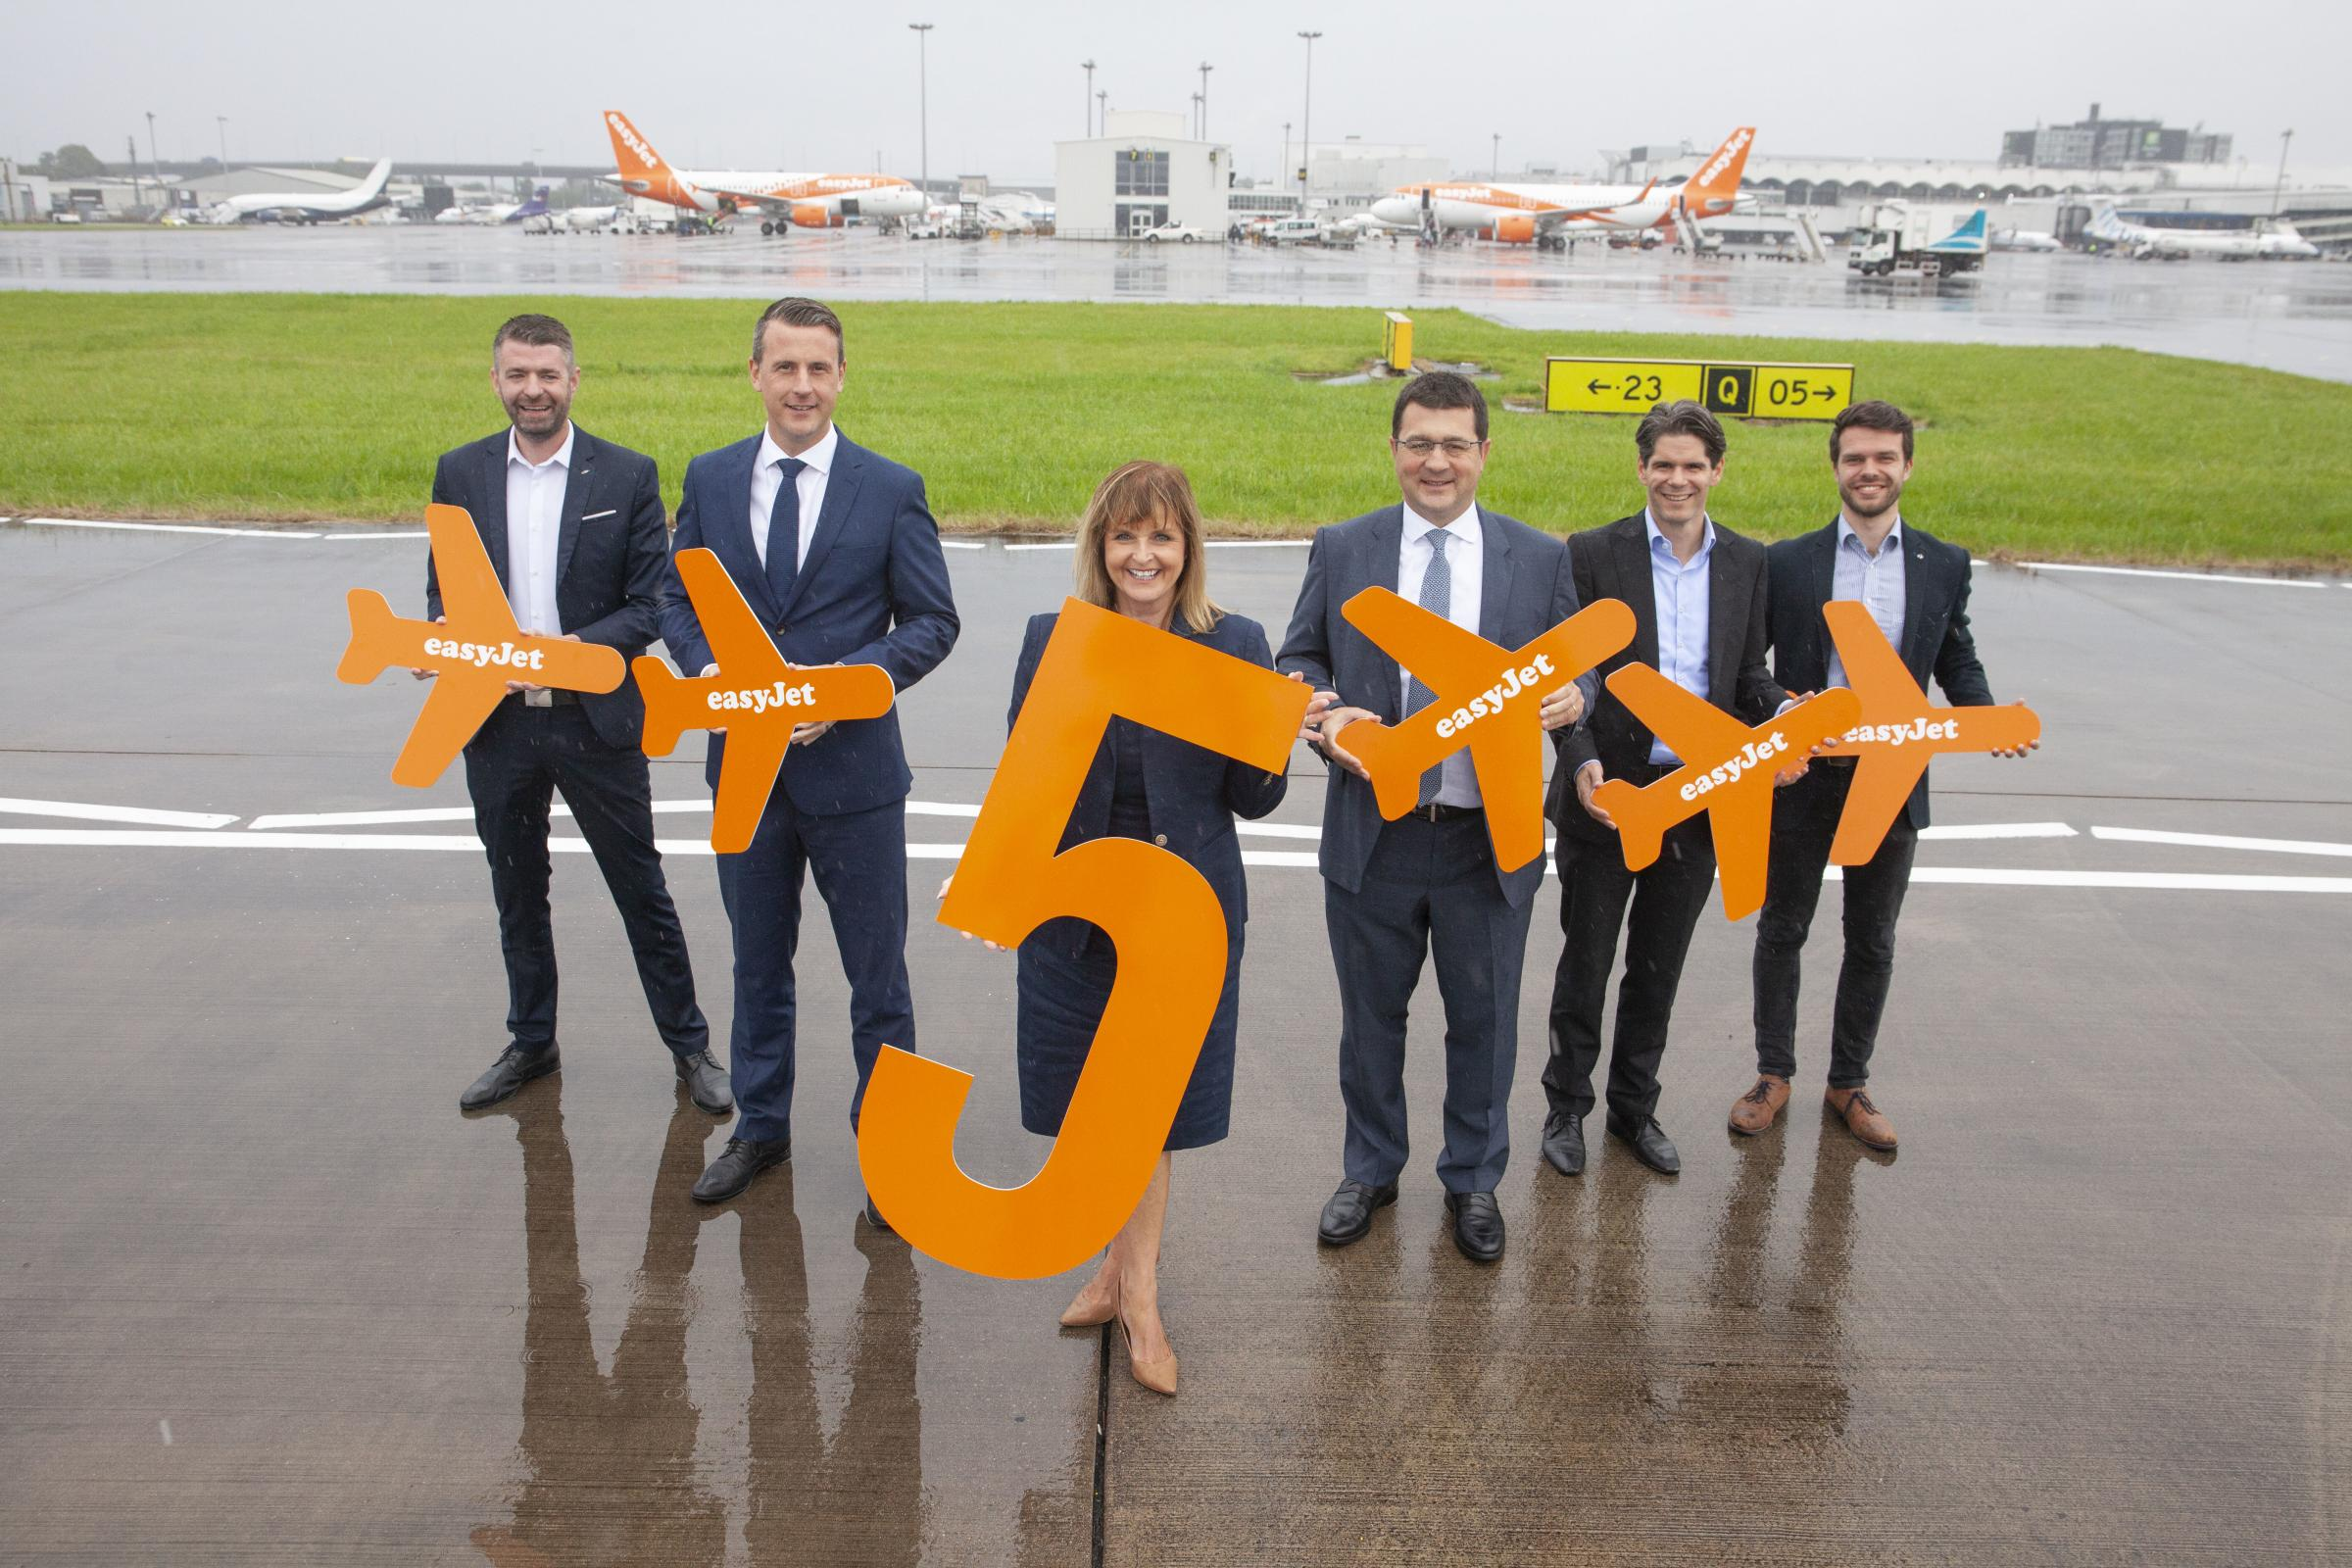 Easyjet vows to expand Scottish routes after Glasgow jobs boost